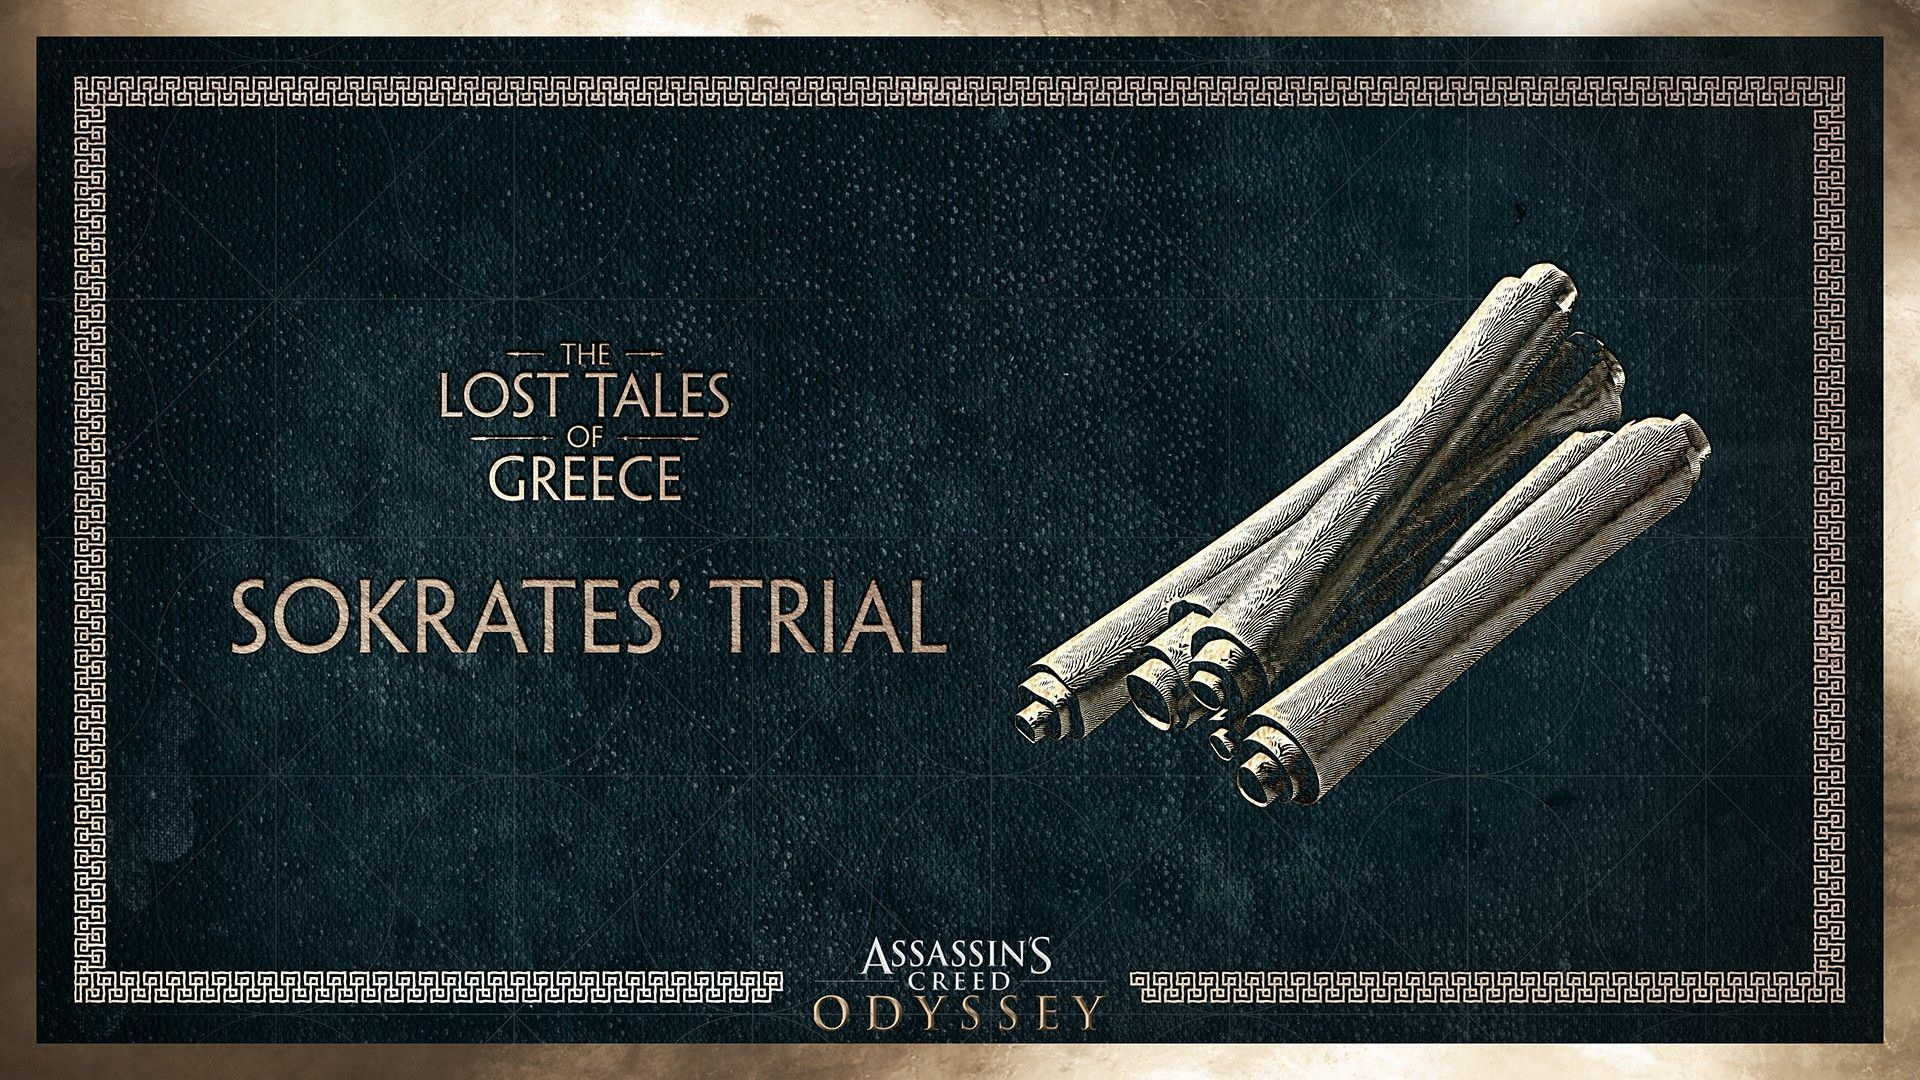 Assassin's Creed Odyssey SokratesTrial